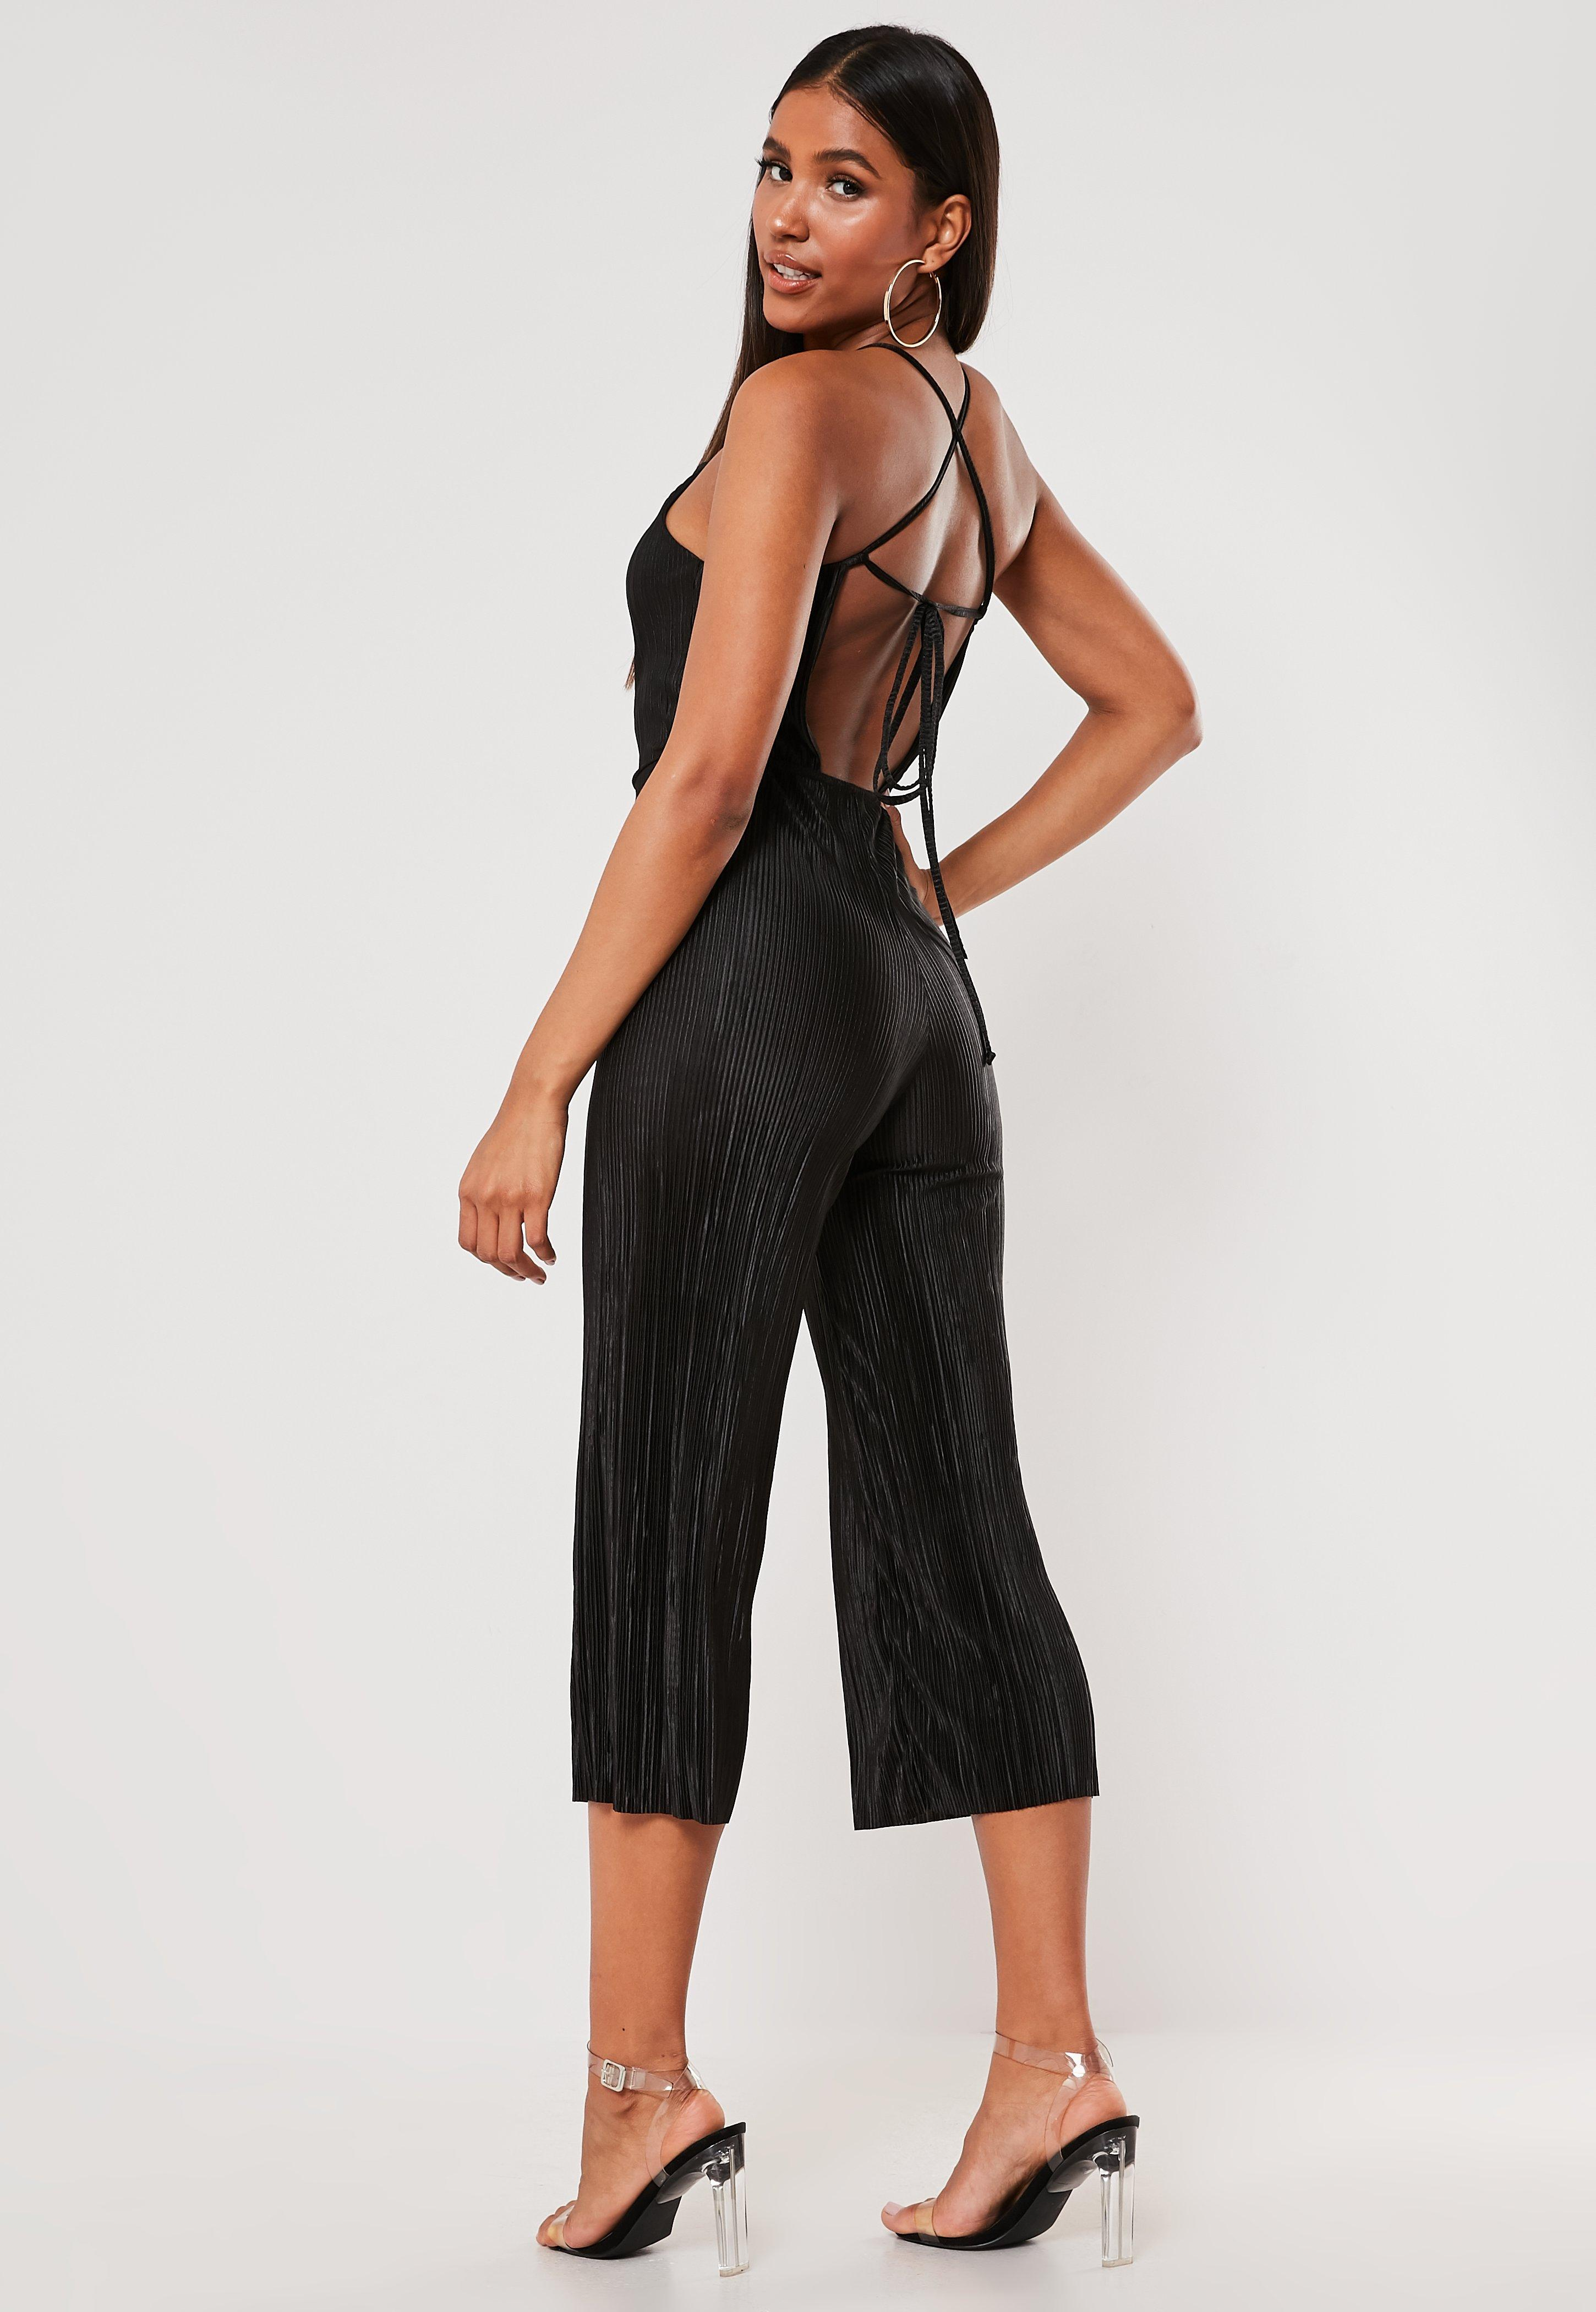 7a31648047fbe Jumpsuits | Women's Jumpsuits Online - Missguided